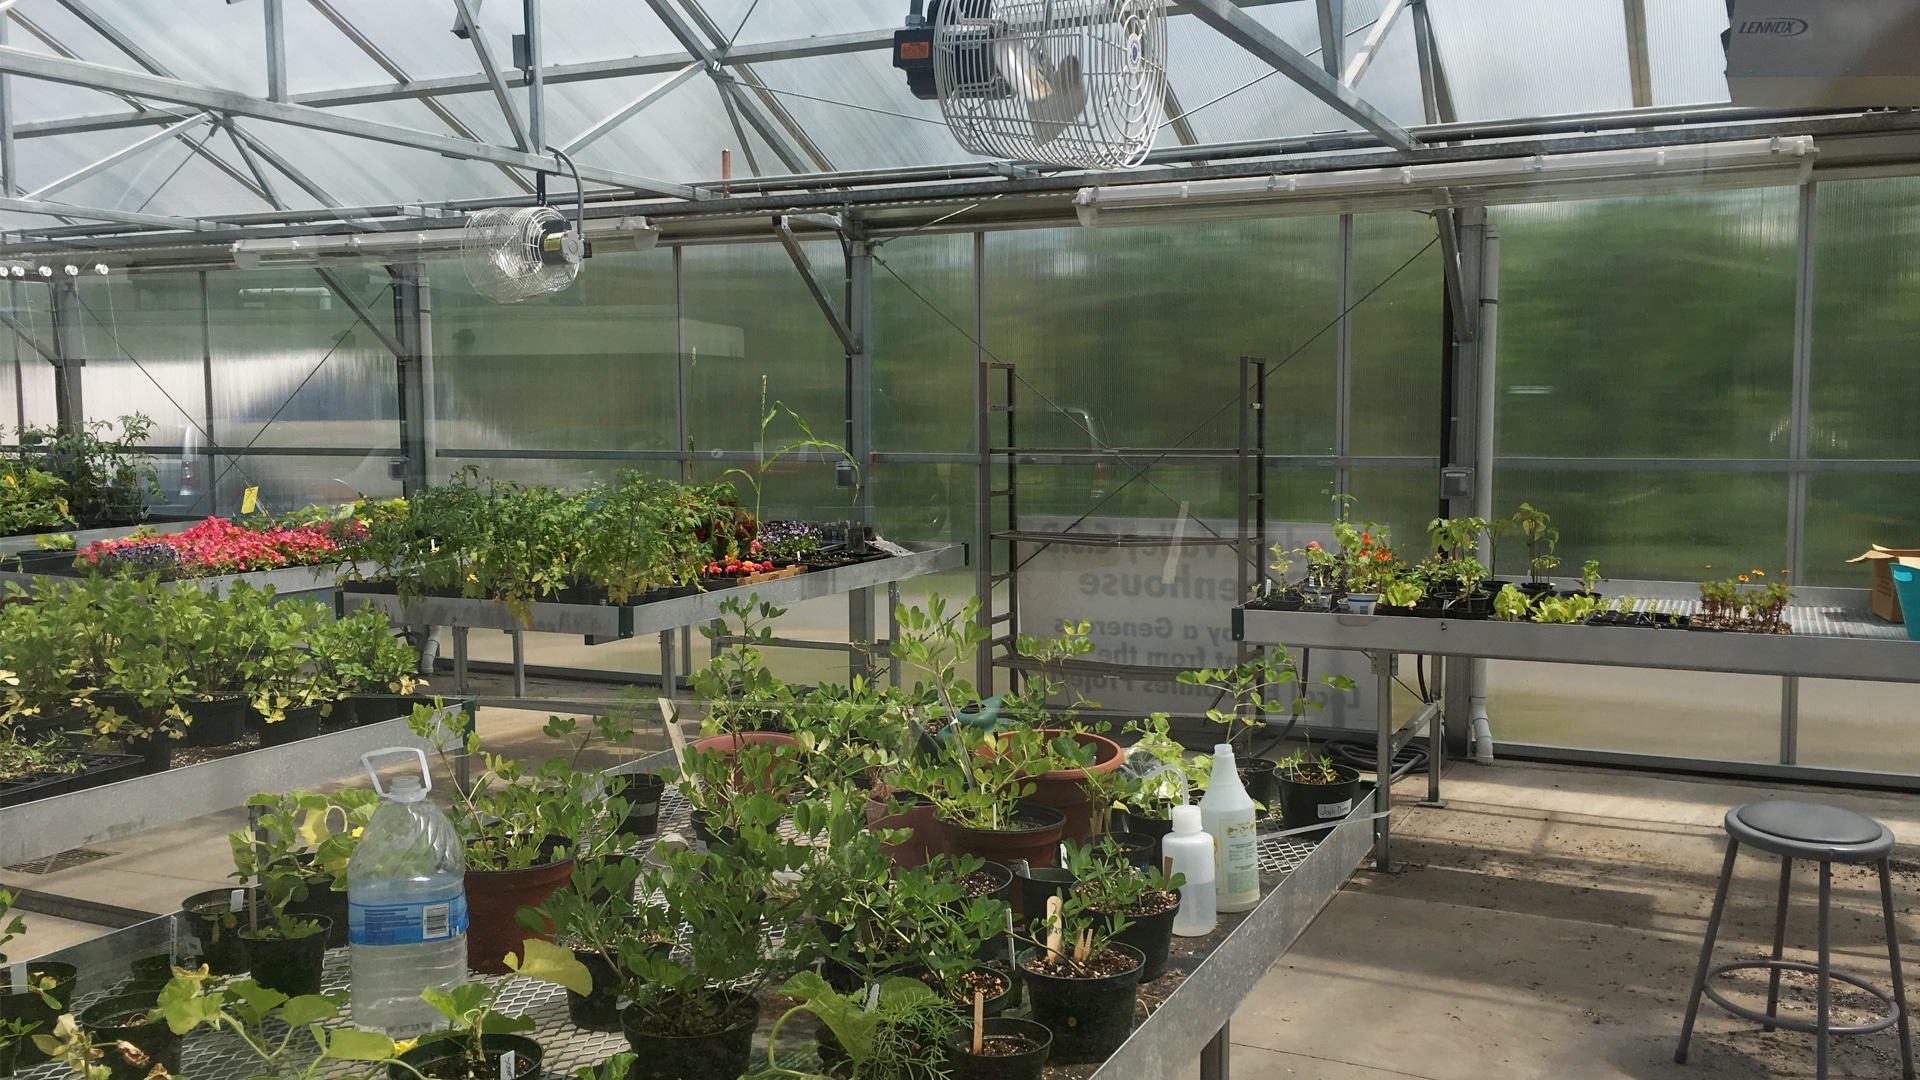 RVCSD Greenhouse Interior With Plants